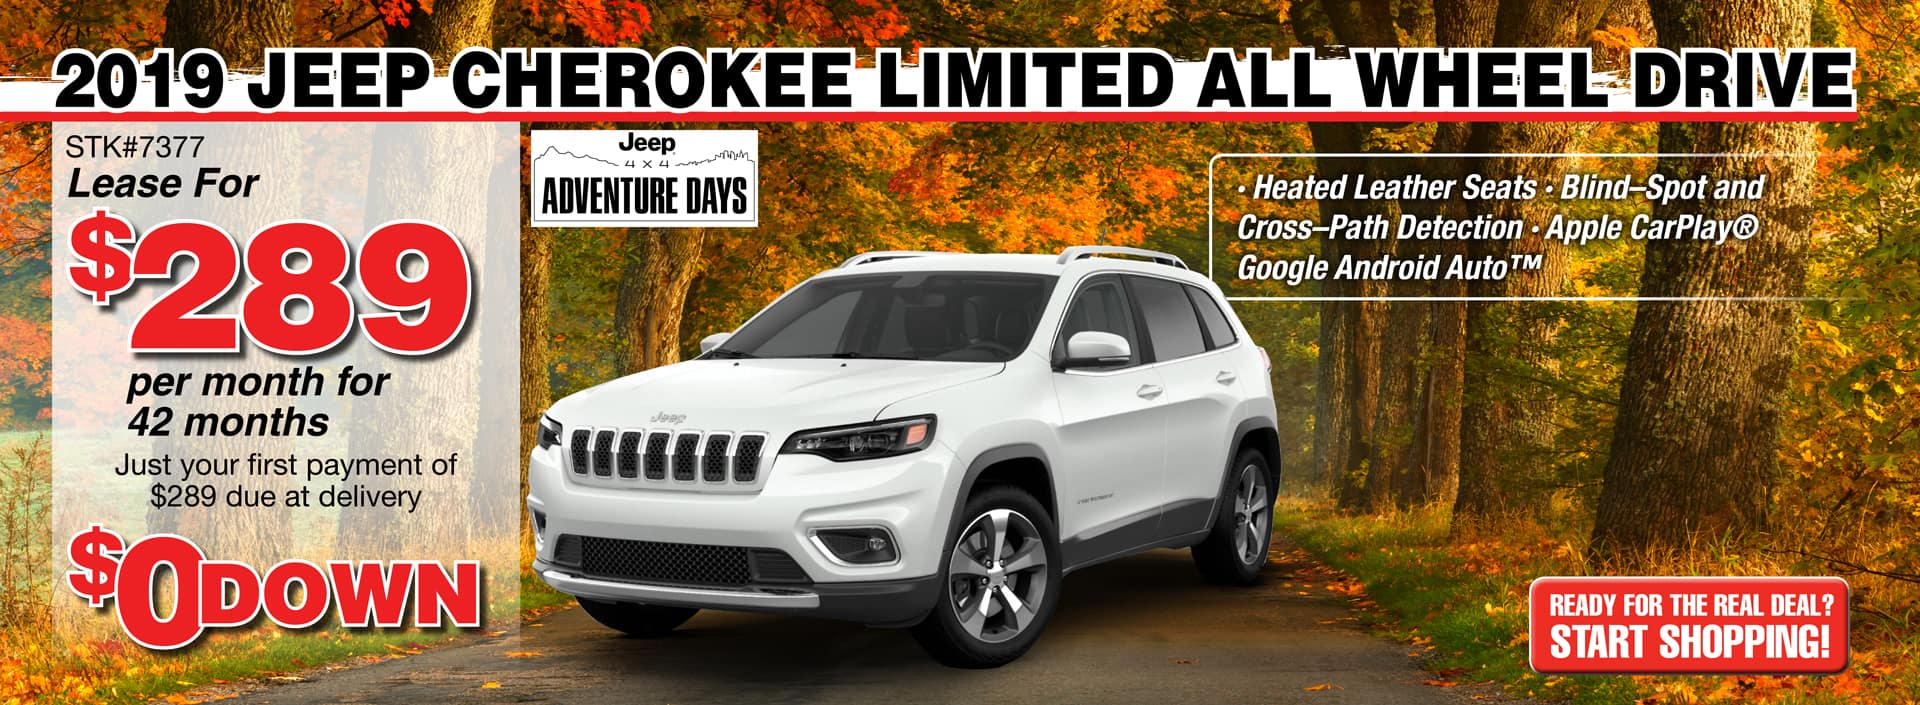 2019 Jeep Cherokee Limited AWD